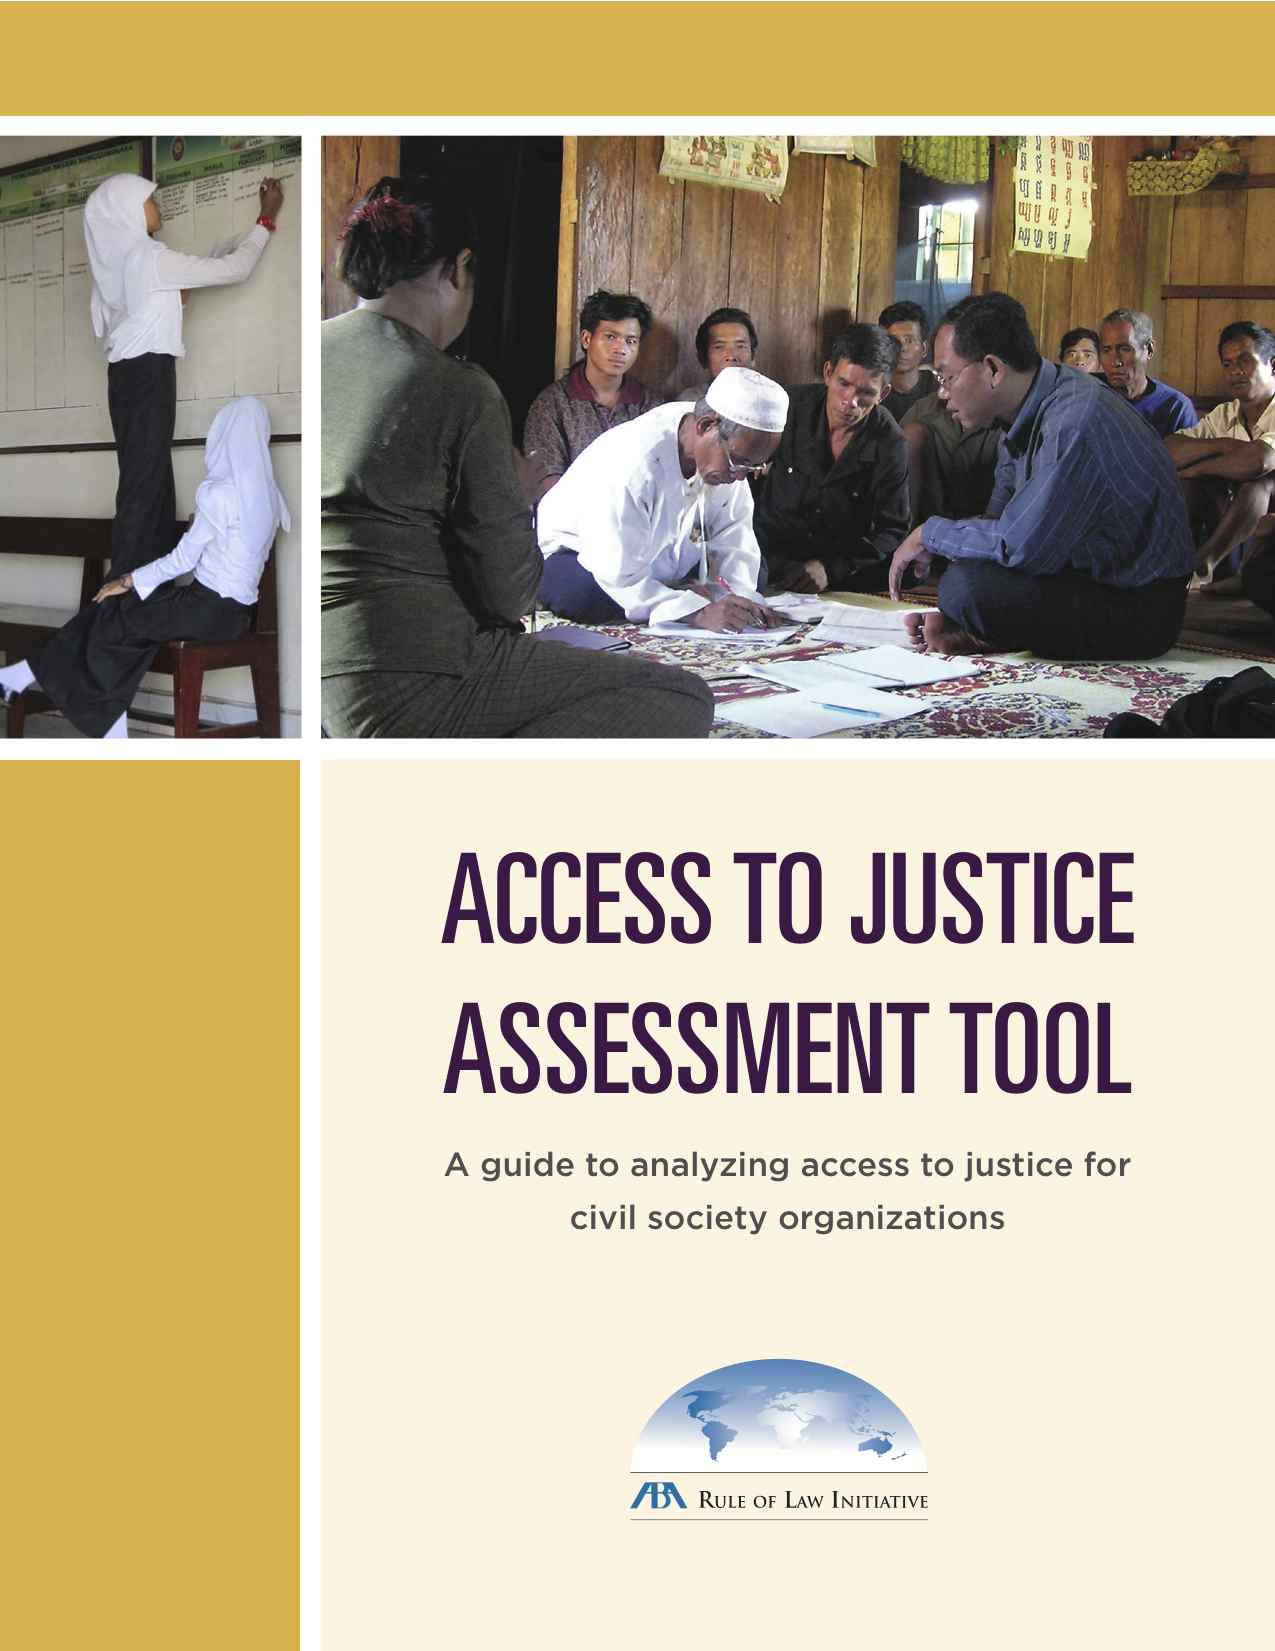 Access to Justice Assessment Tool (ABA ROLI)